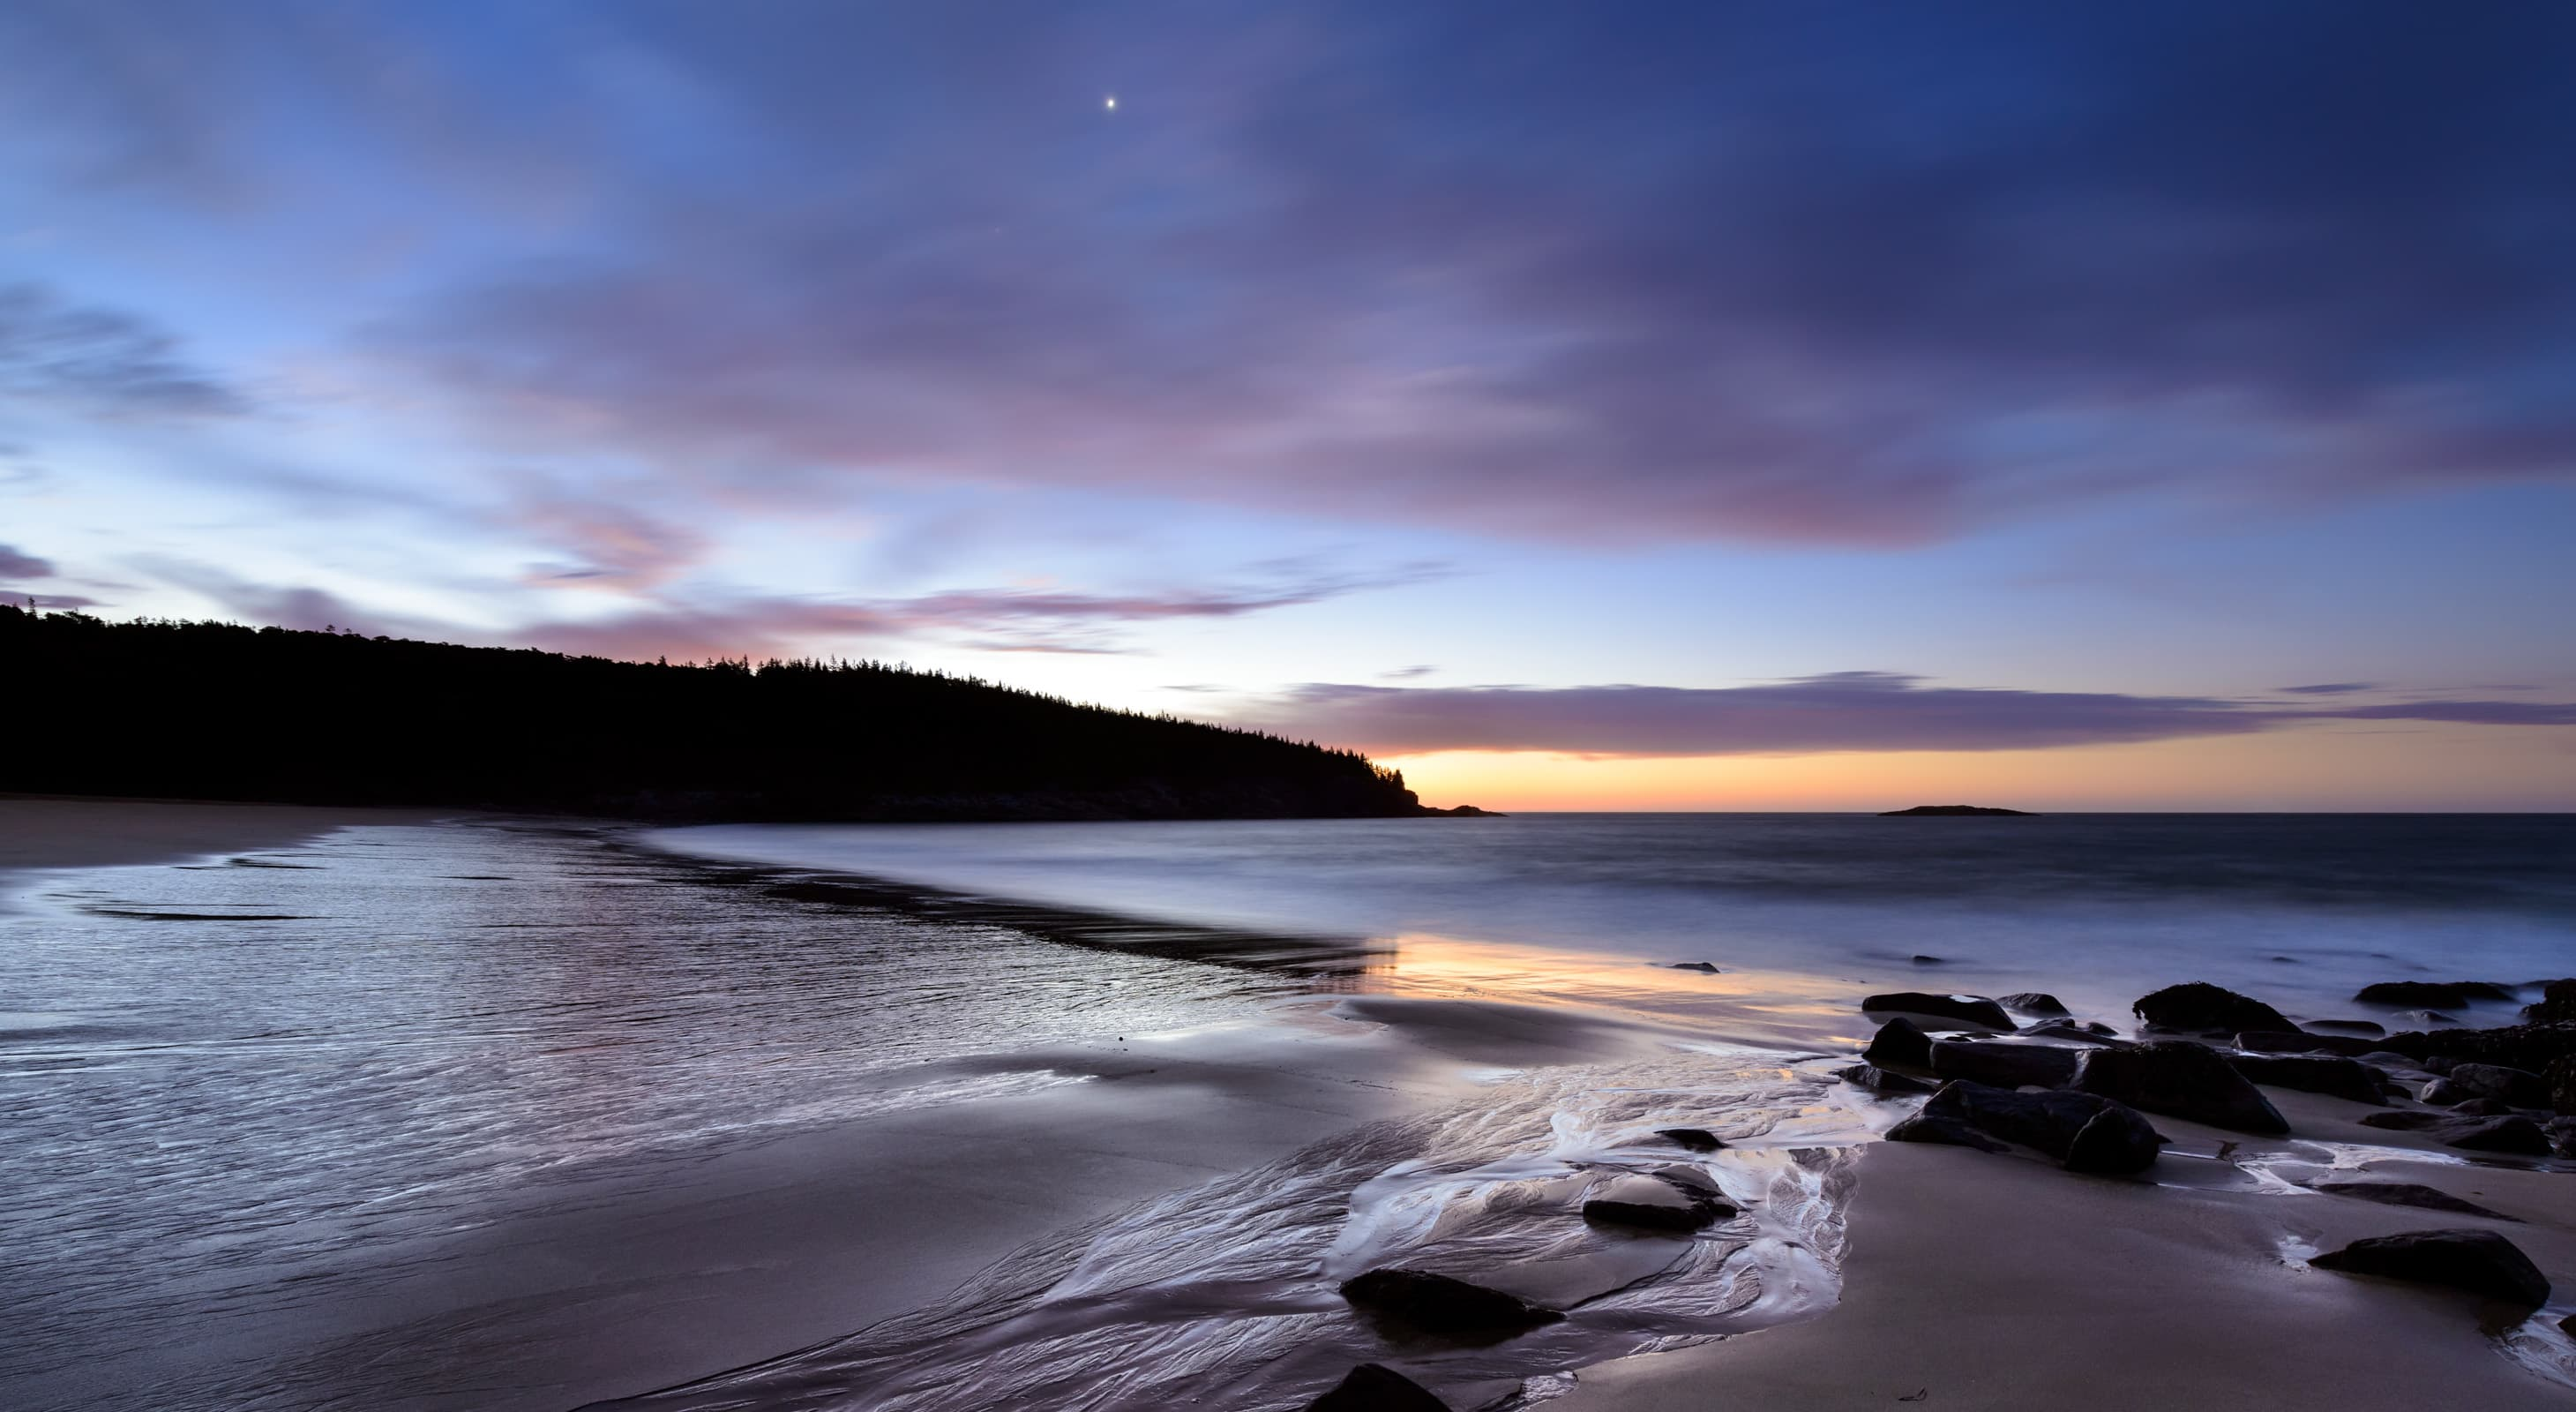 The shoreline at Acadia national park in the twilight hours